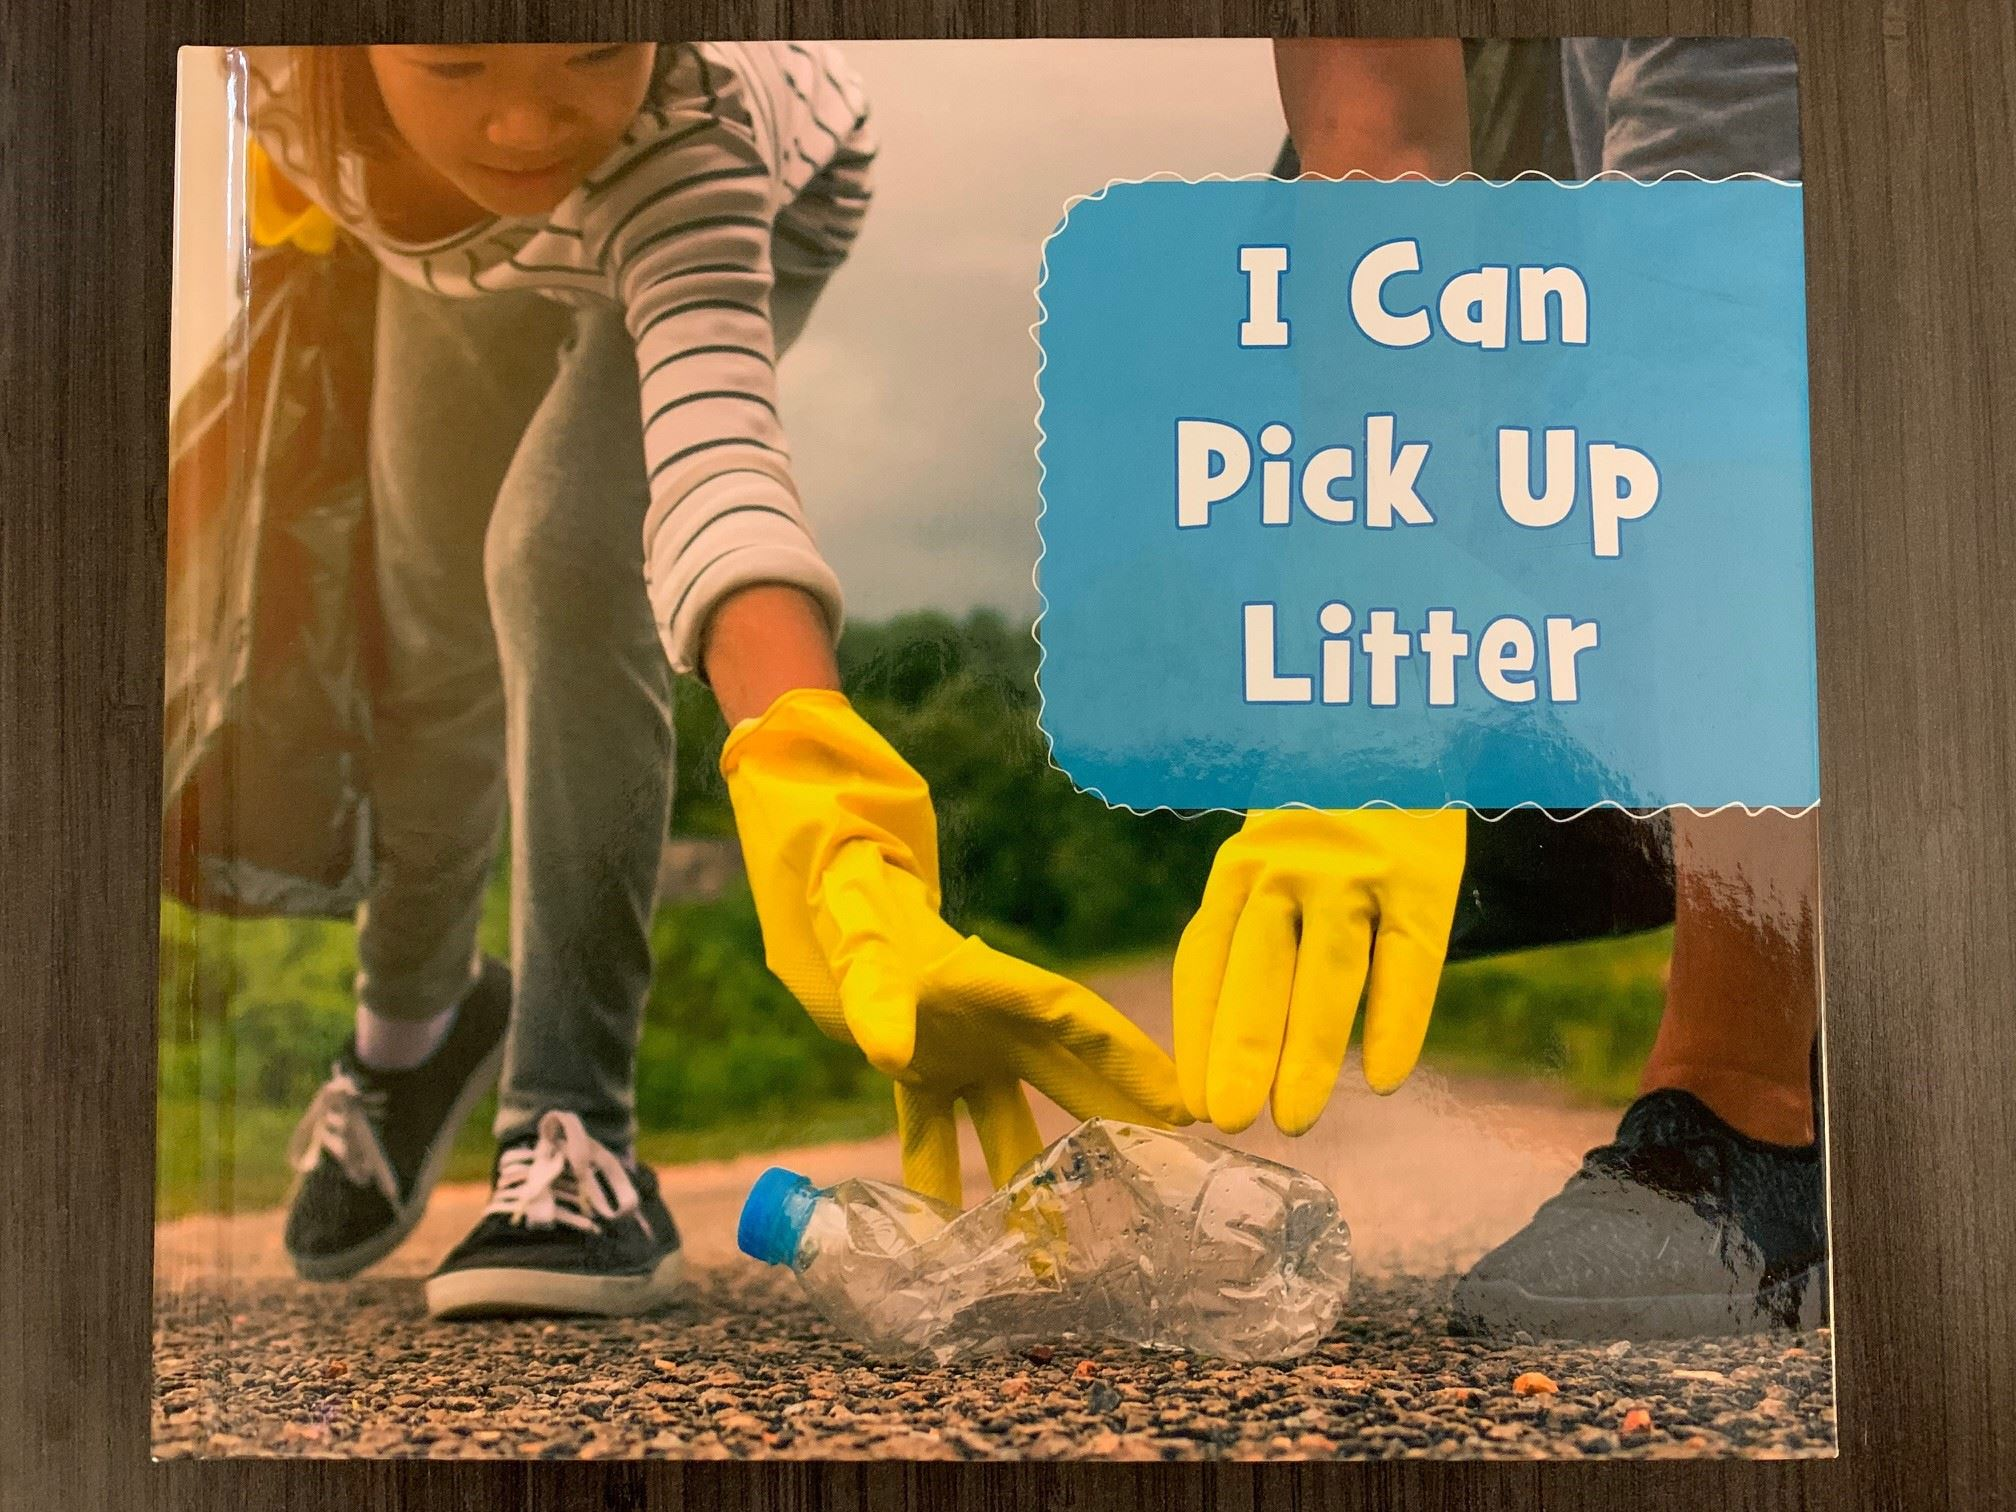 Book 40 - I Can Pick Up Litter